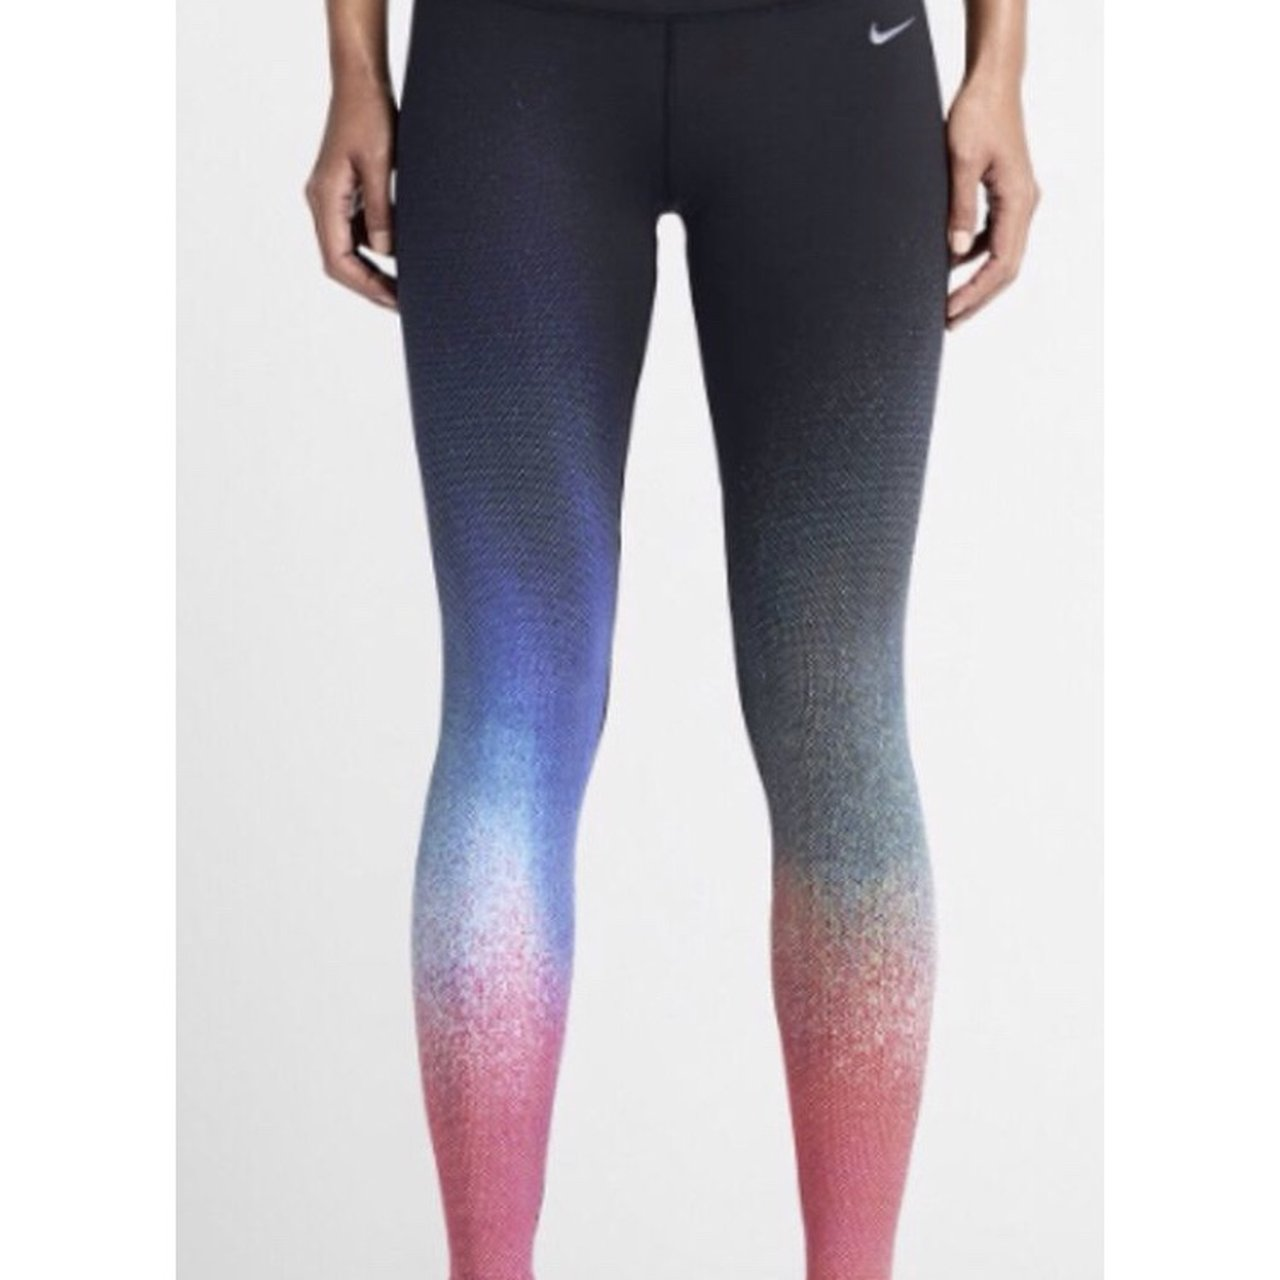 ffab4bbd044dd Nike ombré rainbow leggings. Size small. Worn once just from - Depop